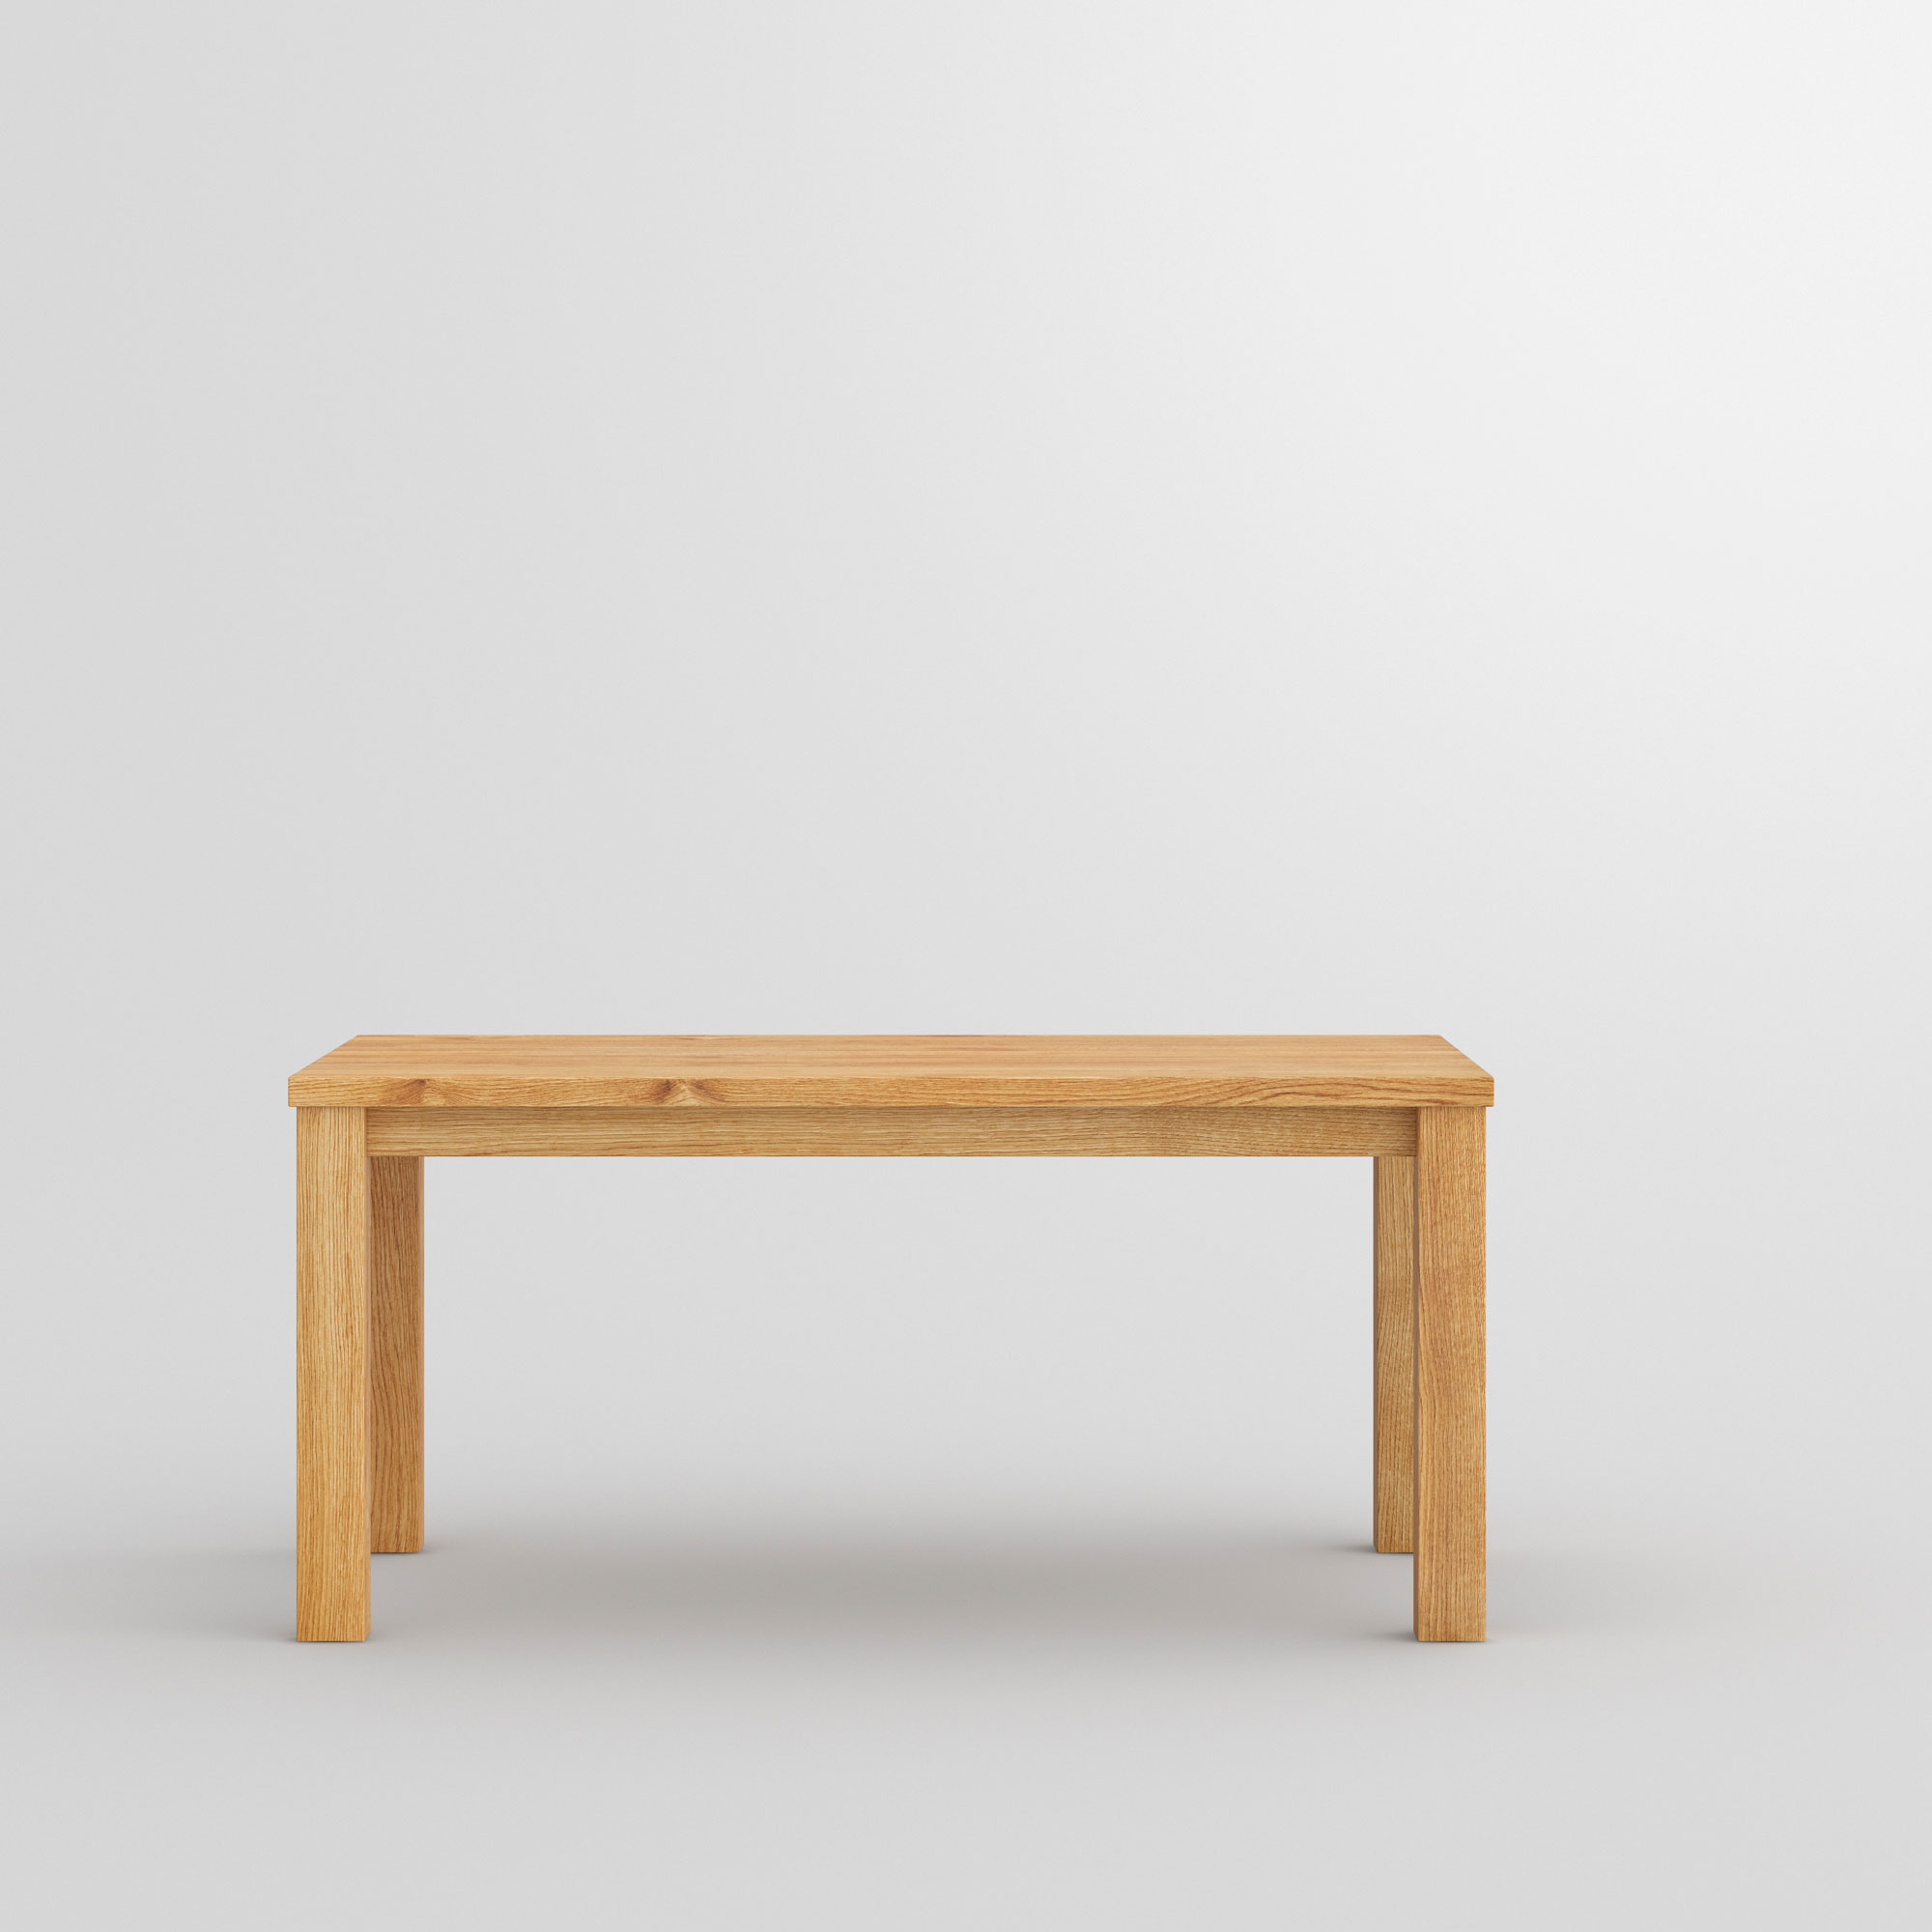 Tailor-Made Solid Wood Table FORTE 4 B9X9 cam2 custom made in solid wood by vitamin design